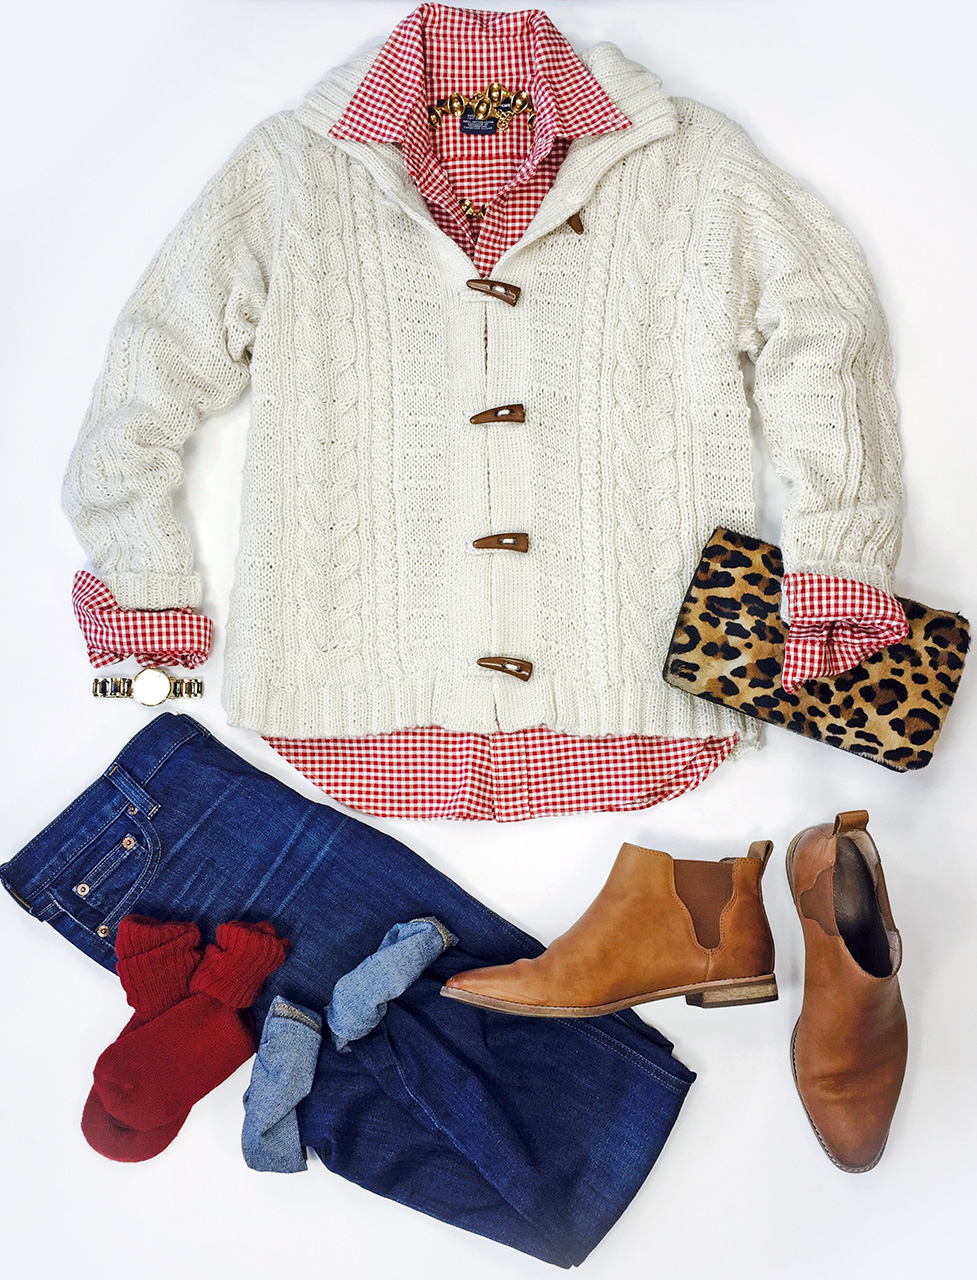 Traditional Aran Cardigan Fashion layout with jeans, red alpaca socks, boots and leopard clutch